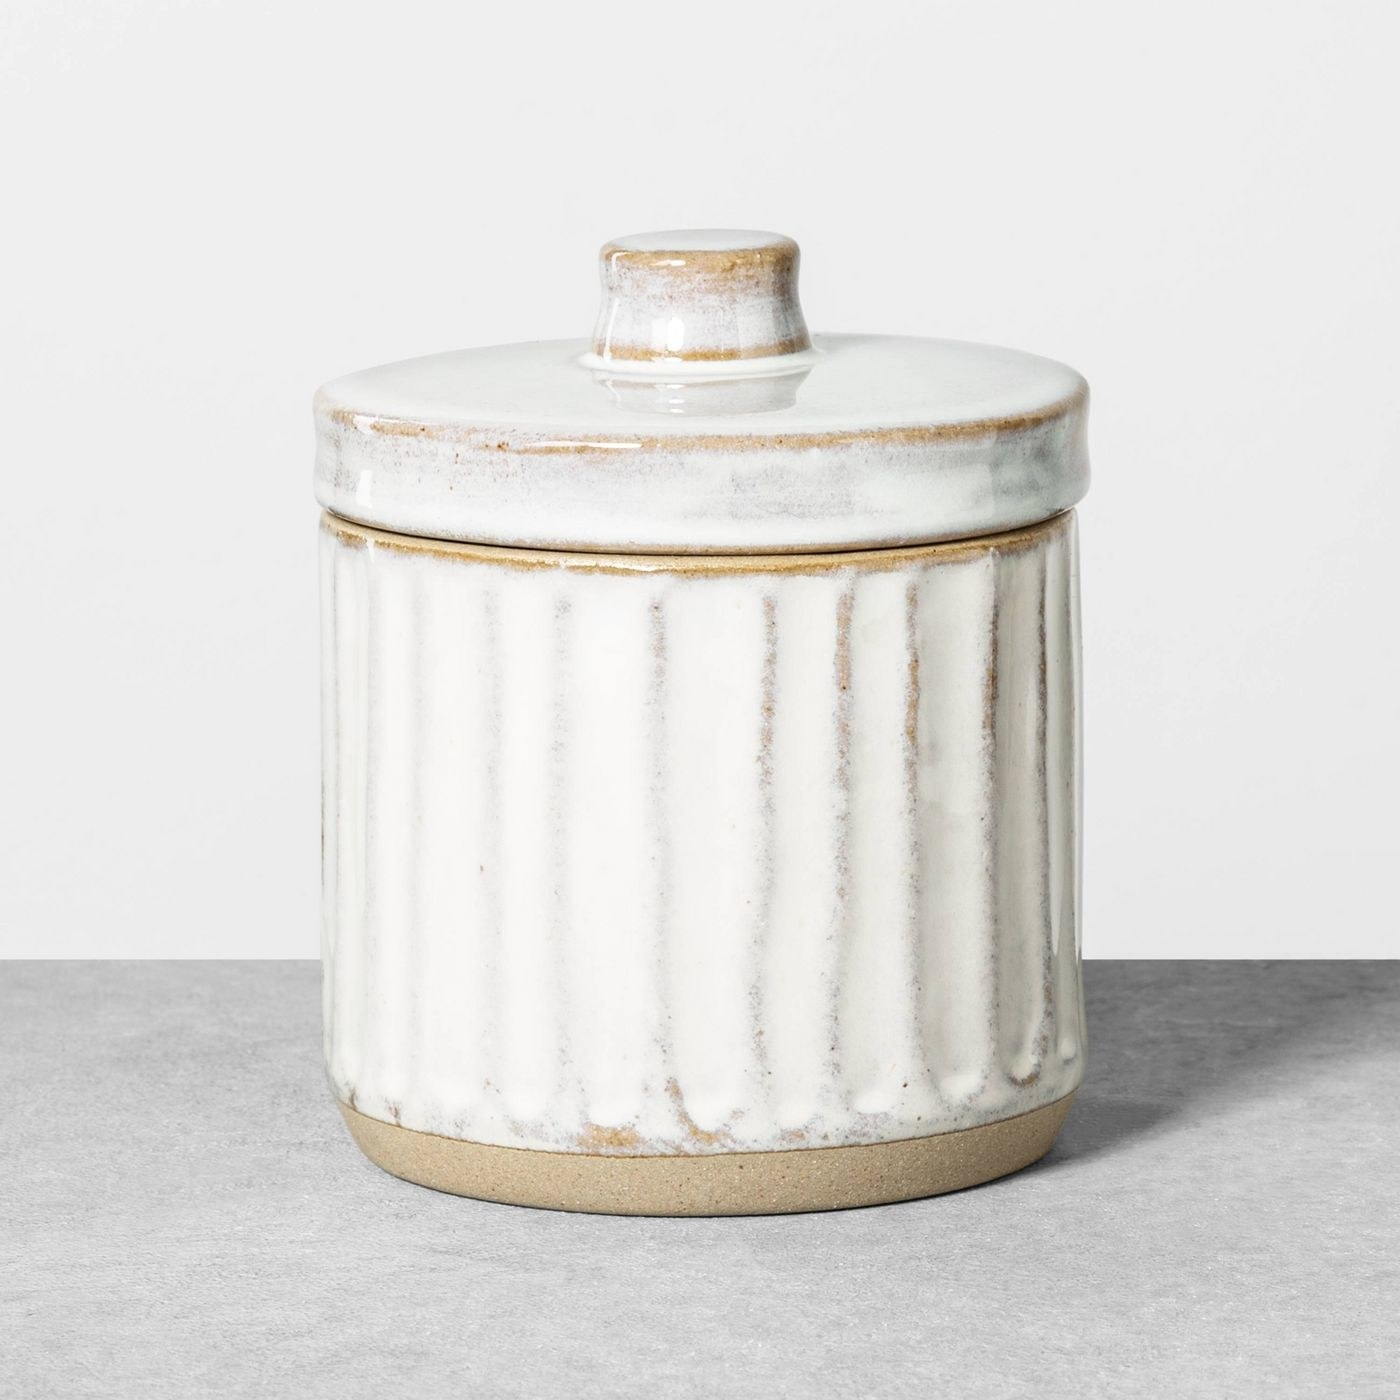 The cream and tan embossed canister